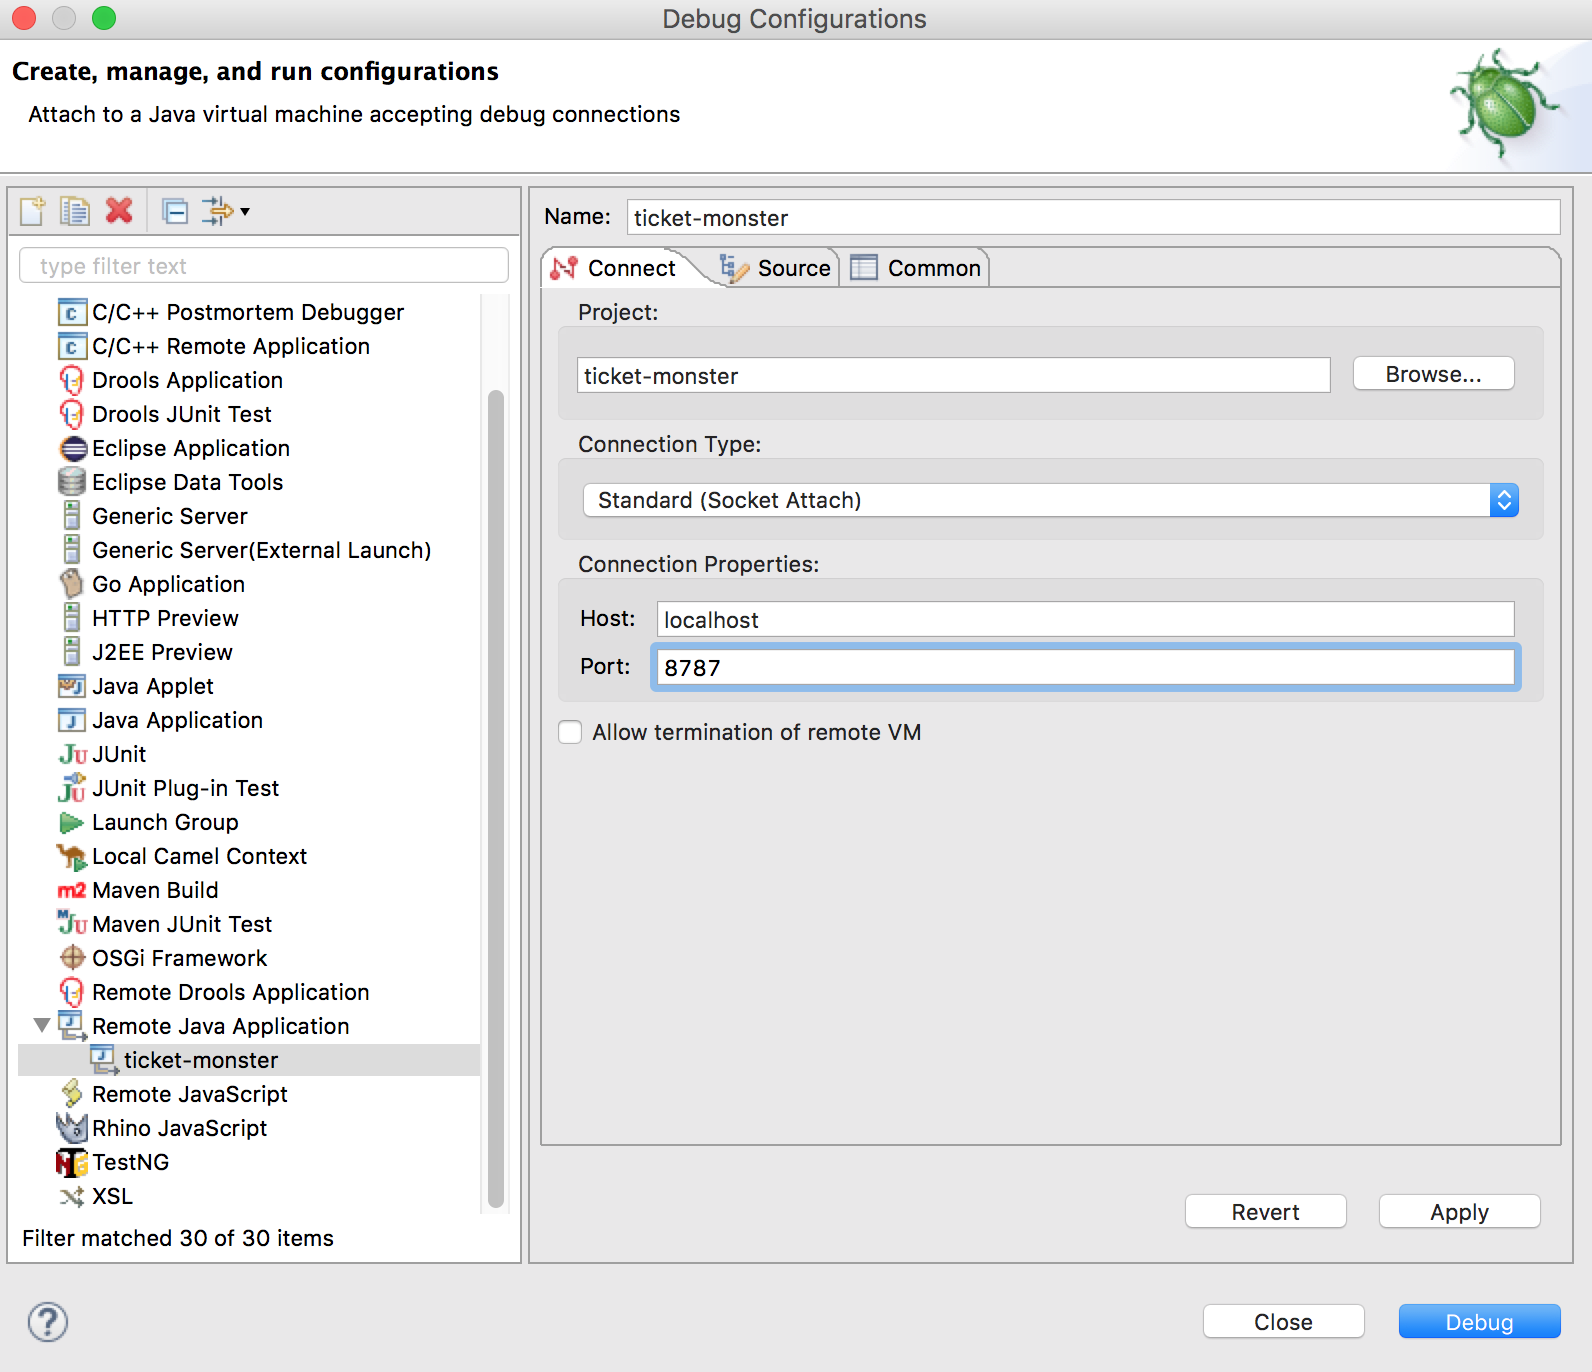 Debugging Java Applications using the Red Hat Container Development